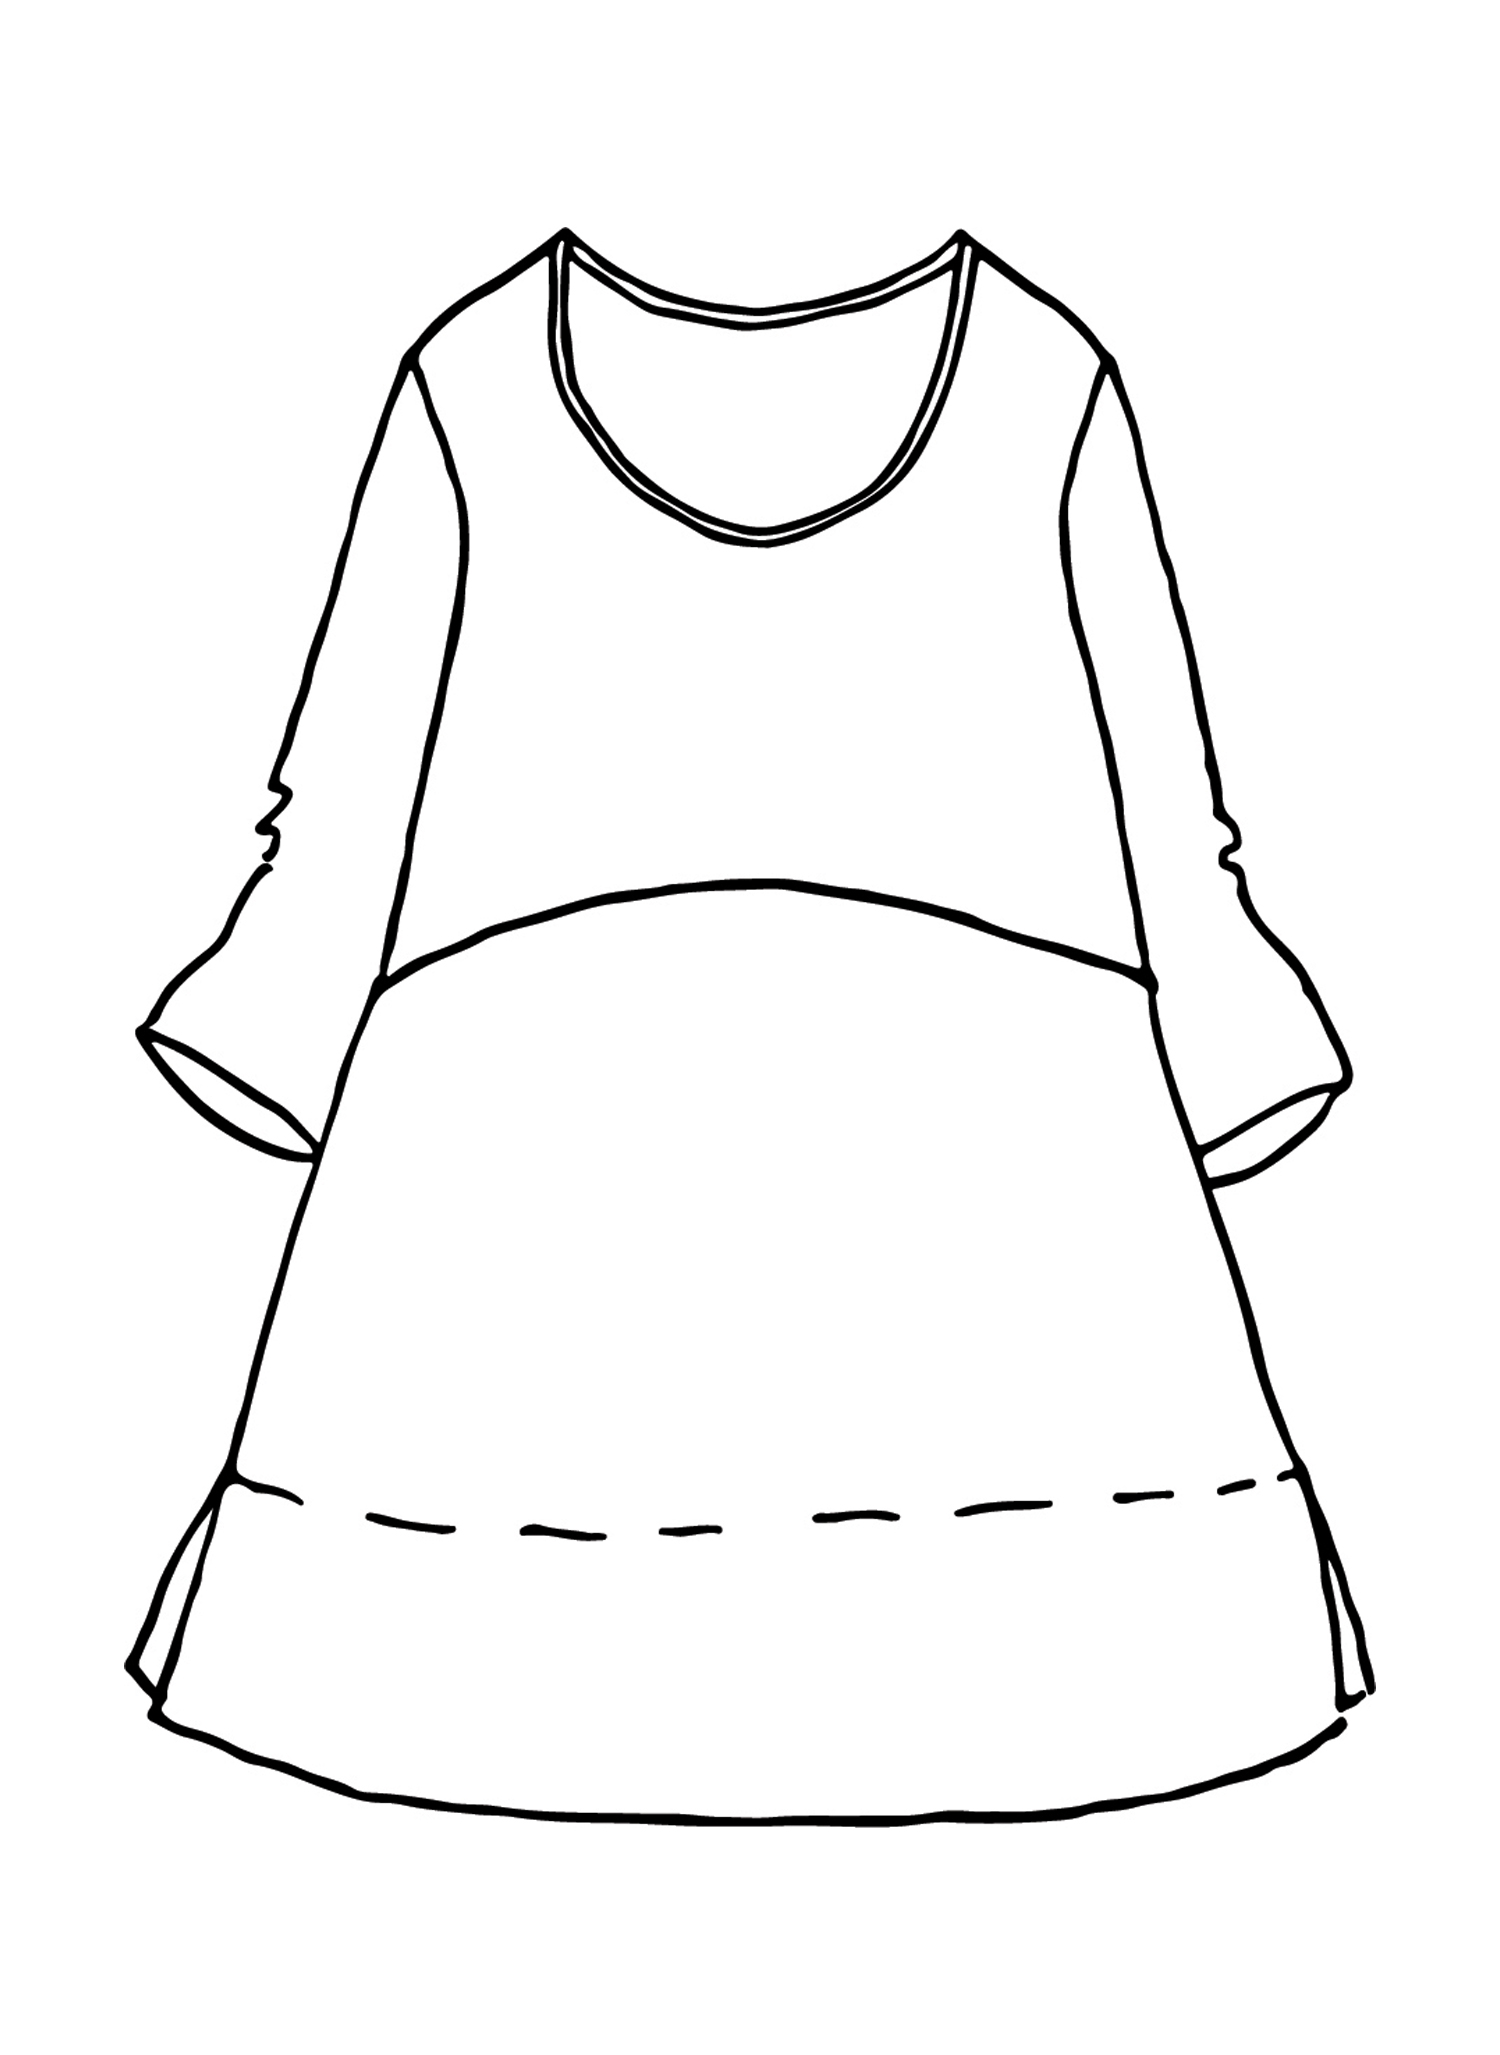 Tranquil Pullover sketch image